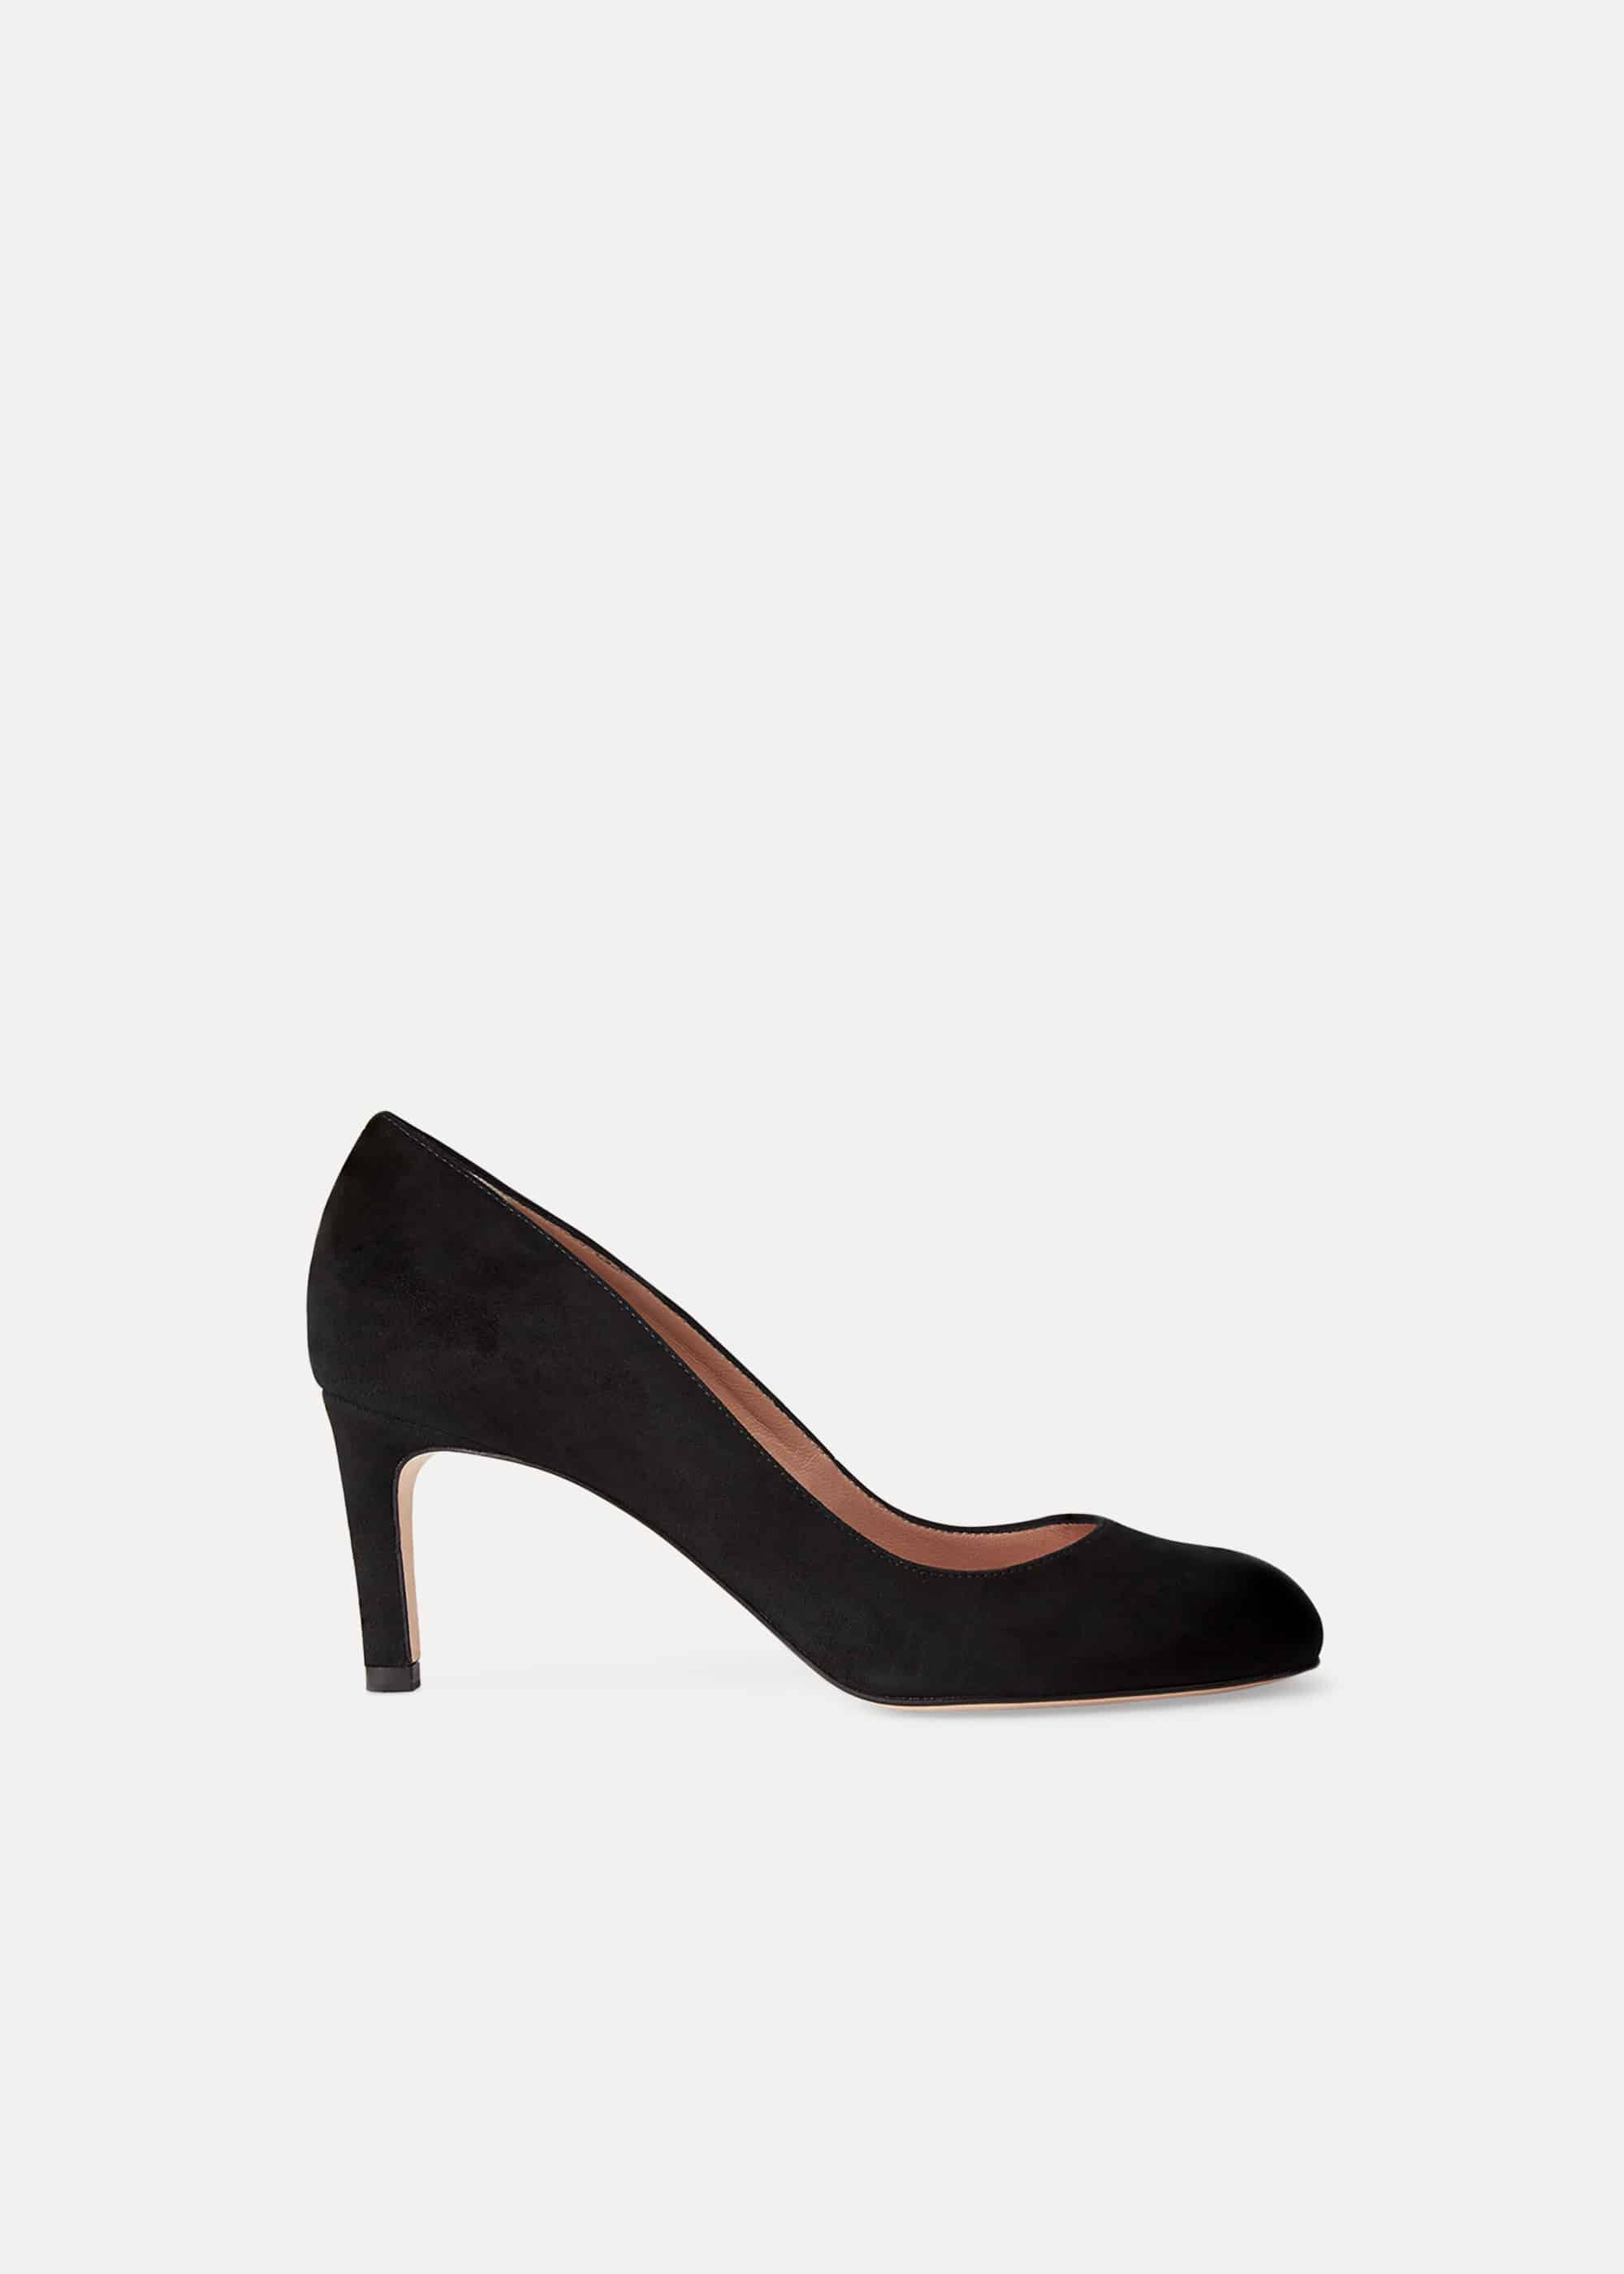 Hobbs Sophia Court Shoe, Black